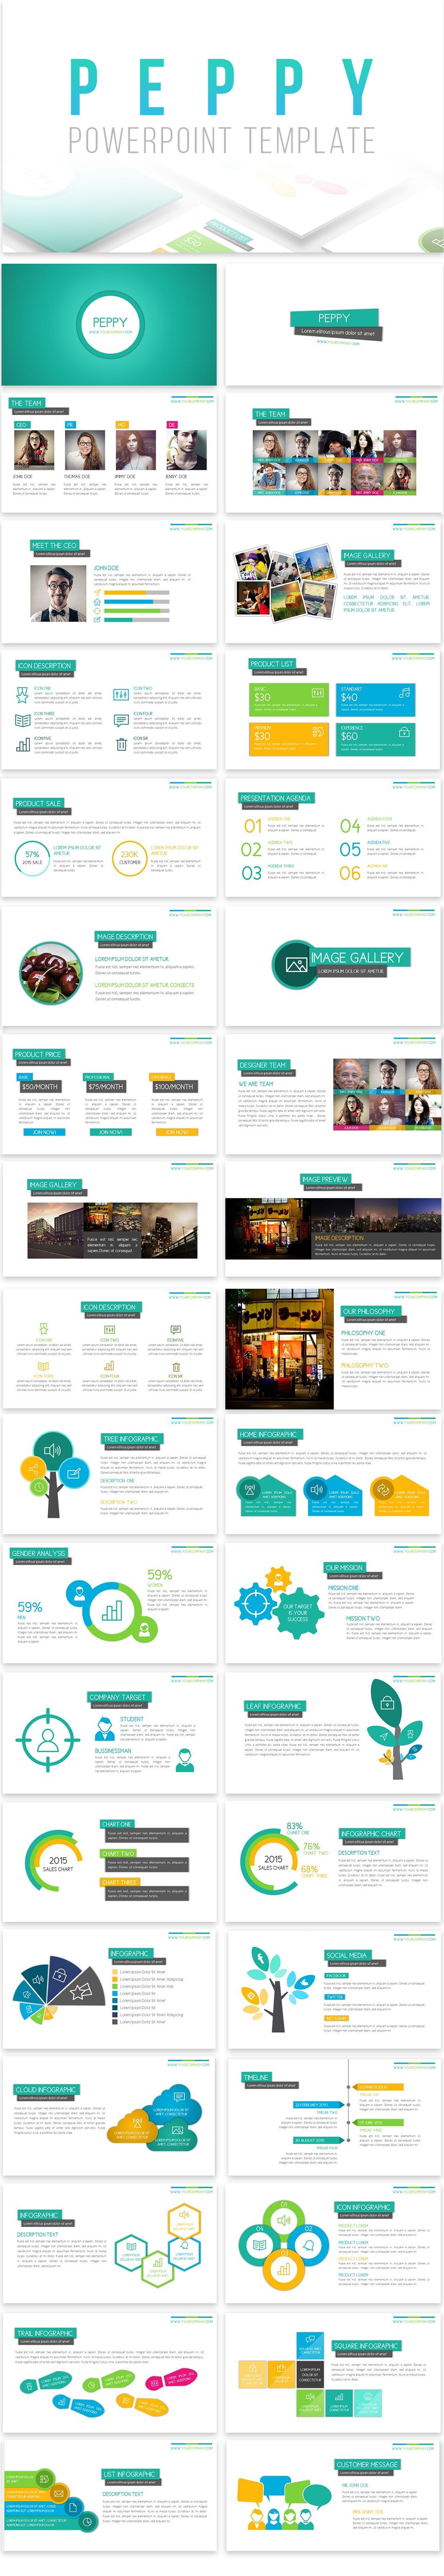 Peppy Powerpoint Template Business Powerpoint Templates